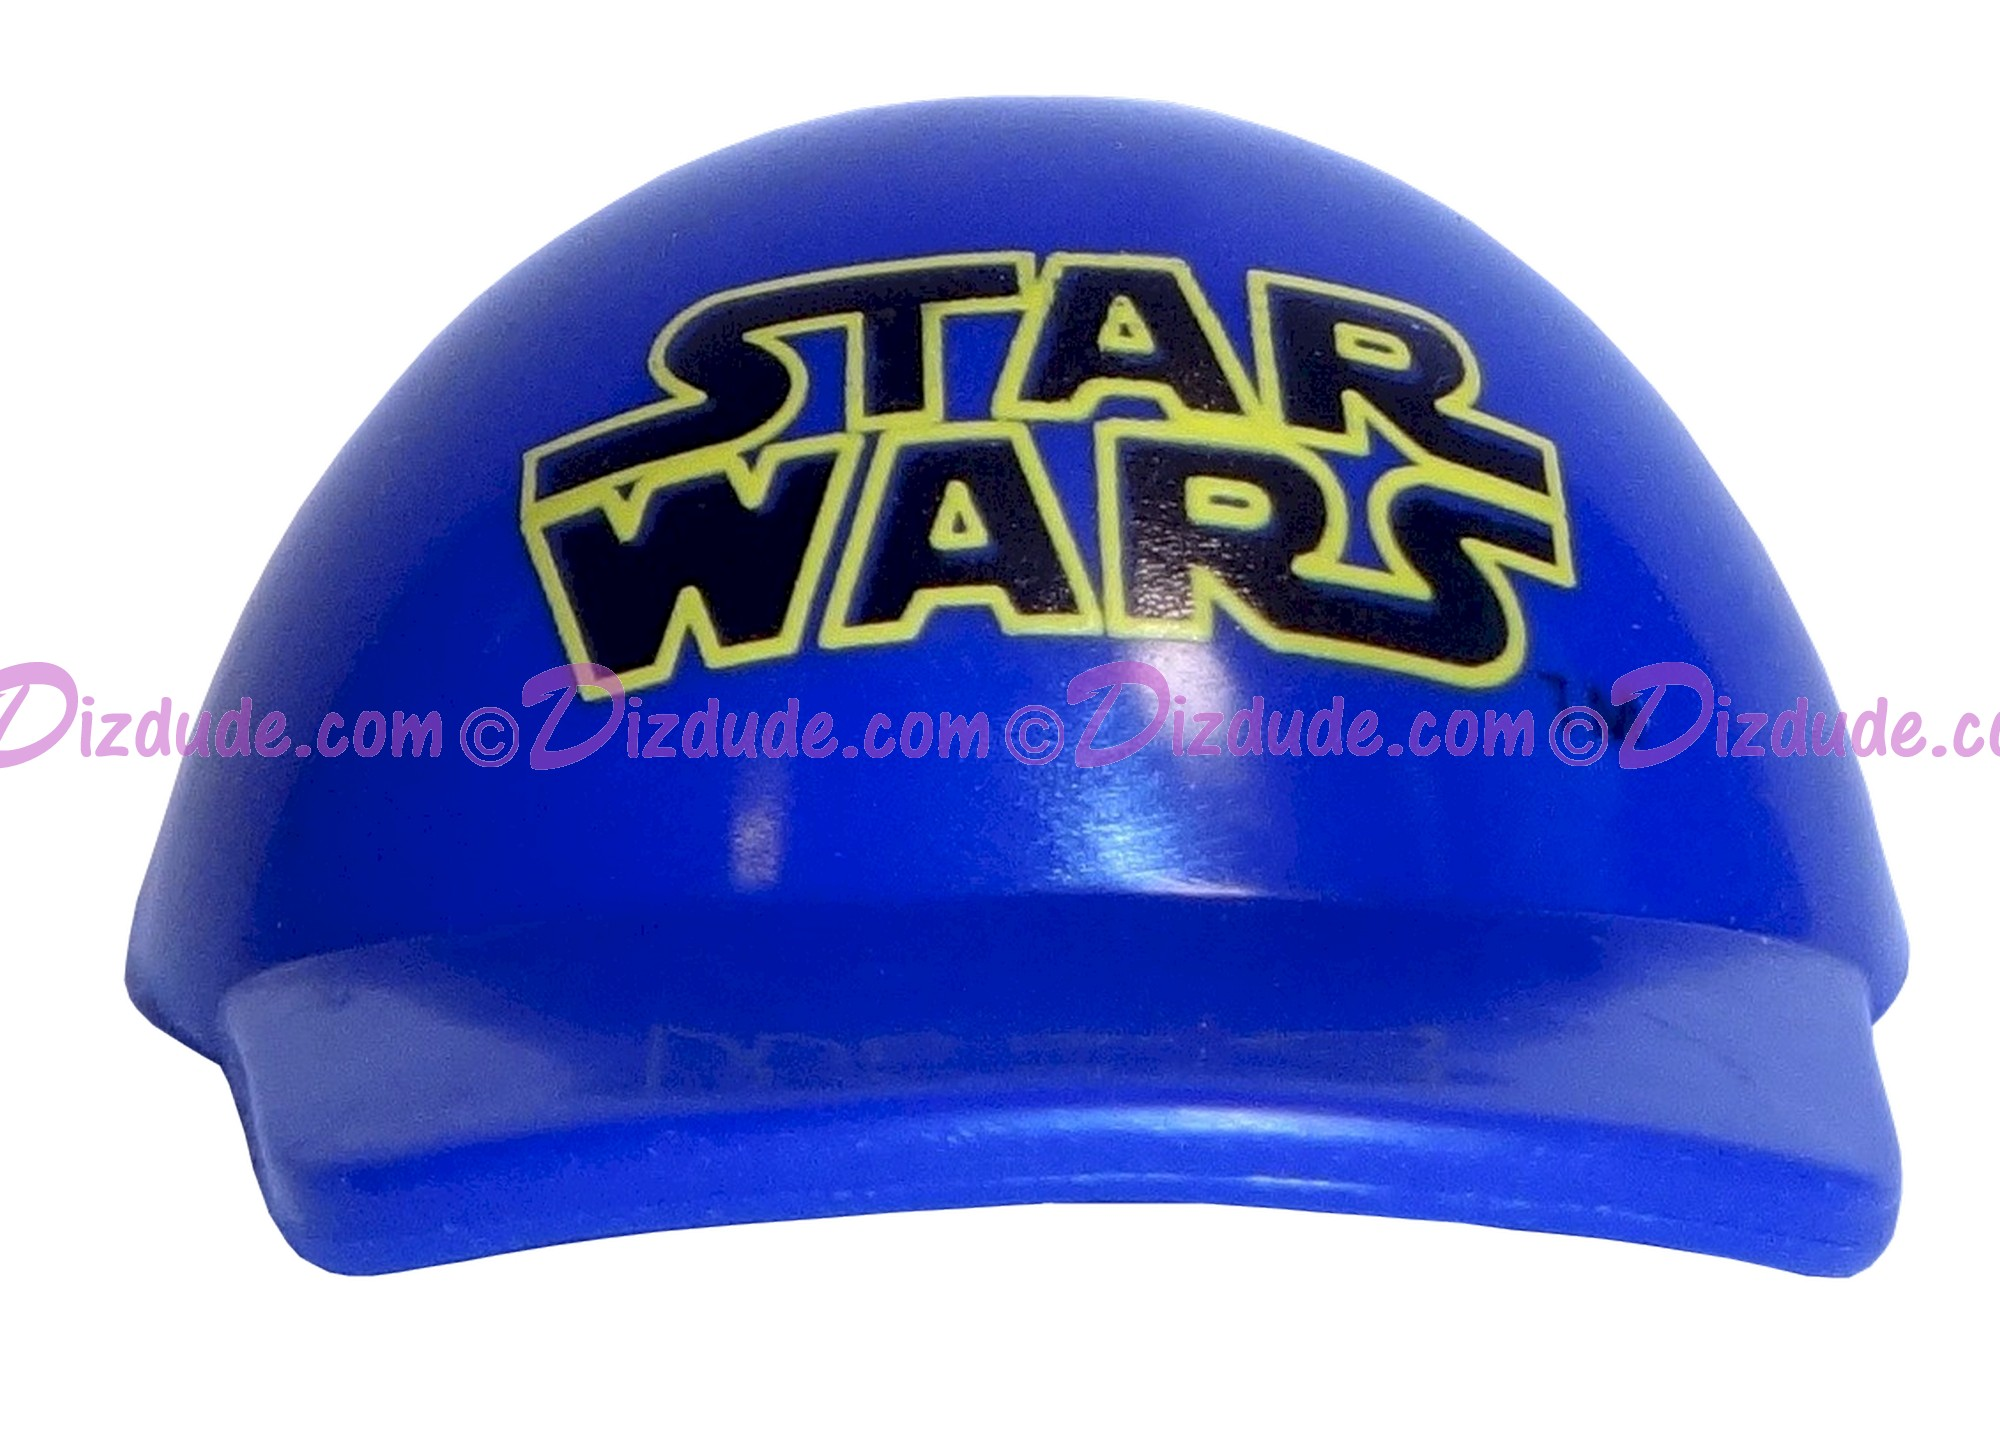 Star Wars Baseball Hat Astromech Droid Part ~ Series 2 from Disney Star Wars Build-A-Droid Factory © Dizdude.com